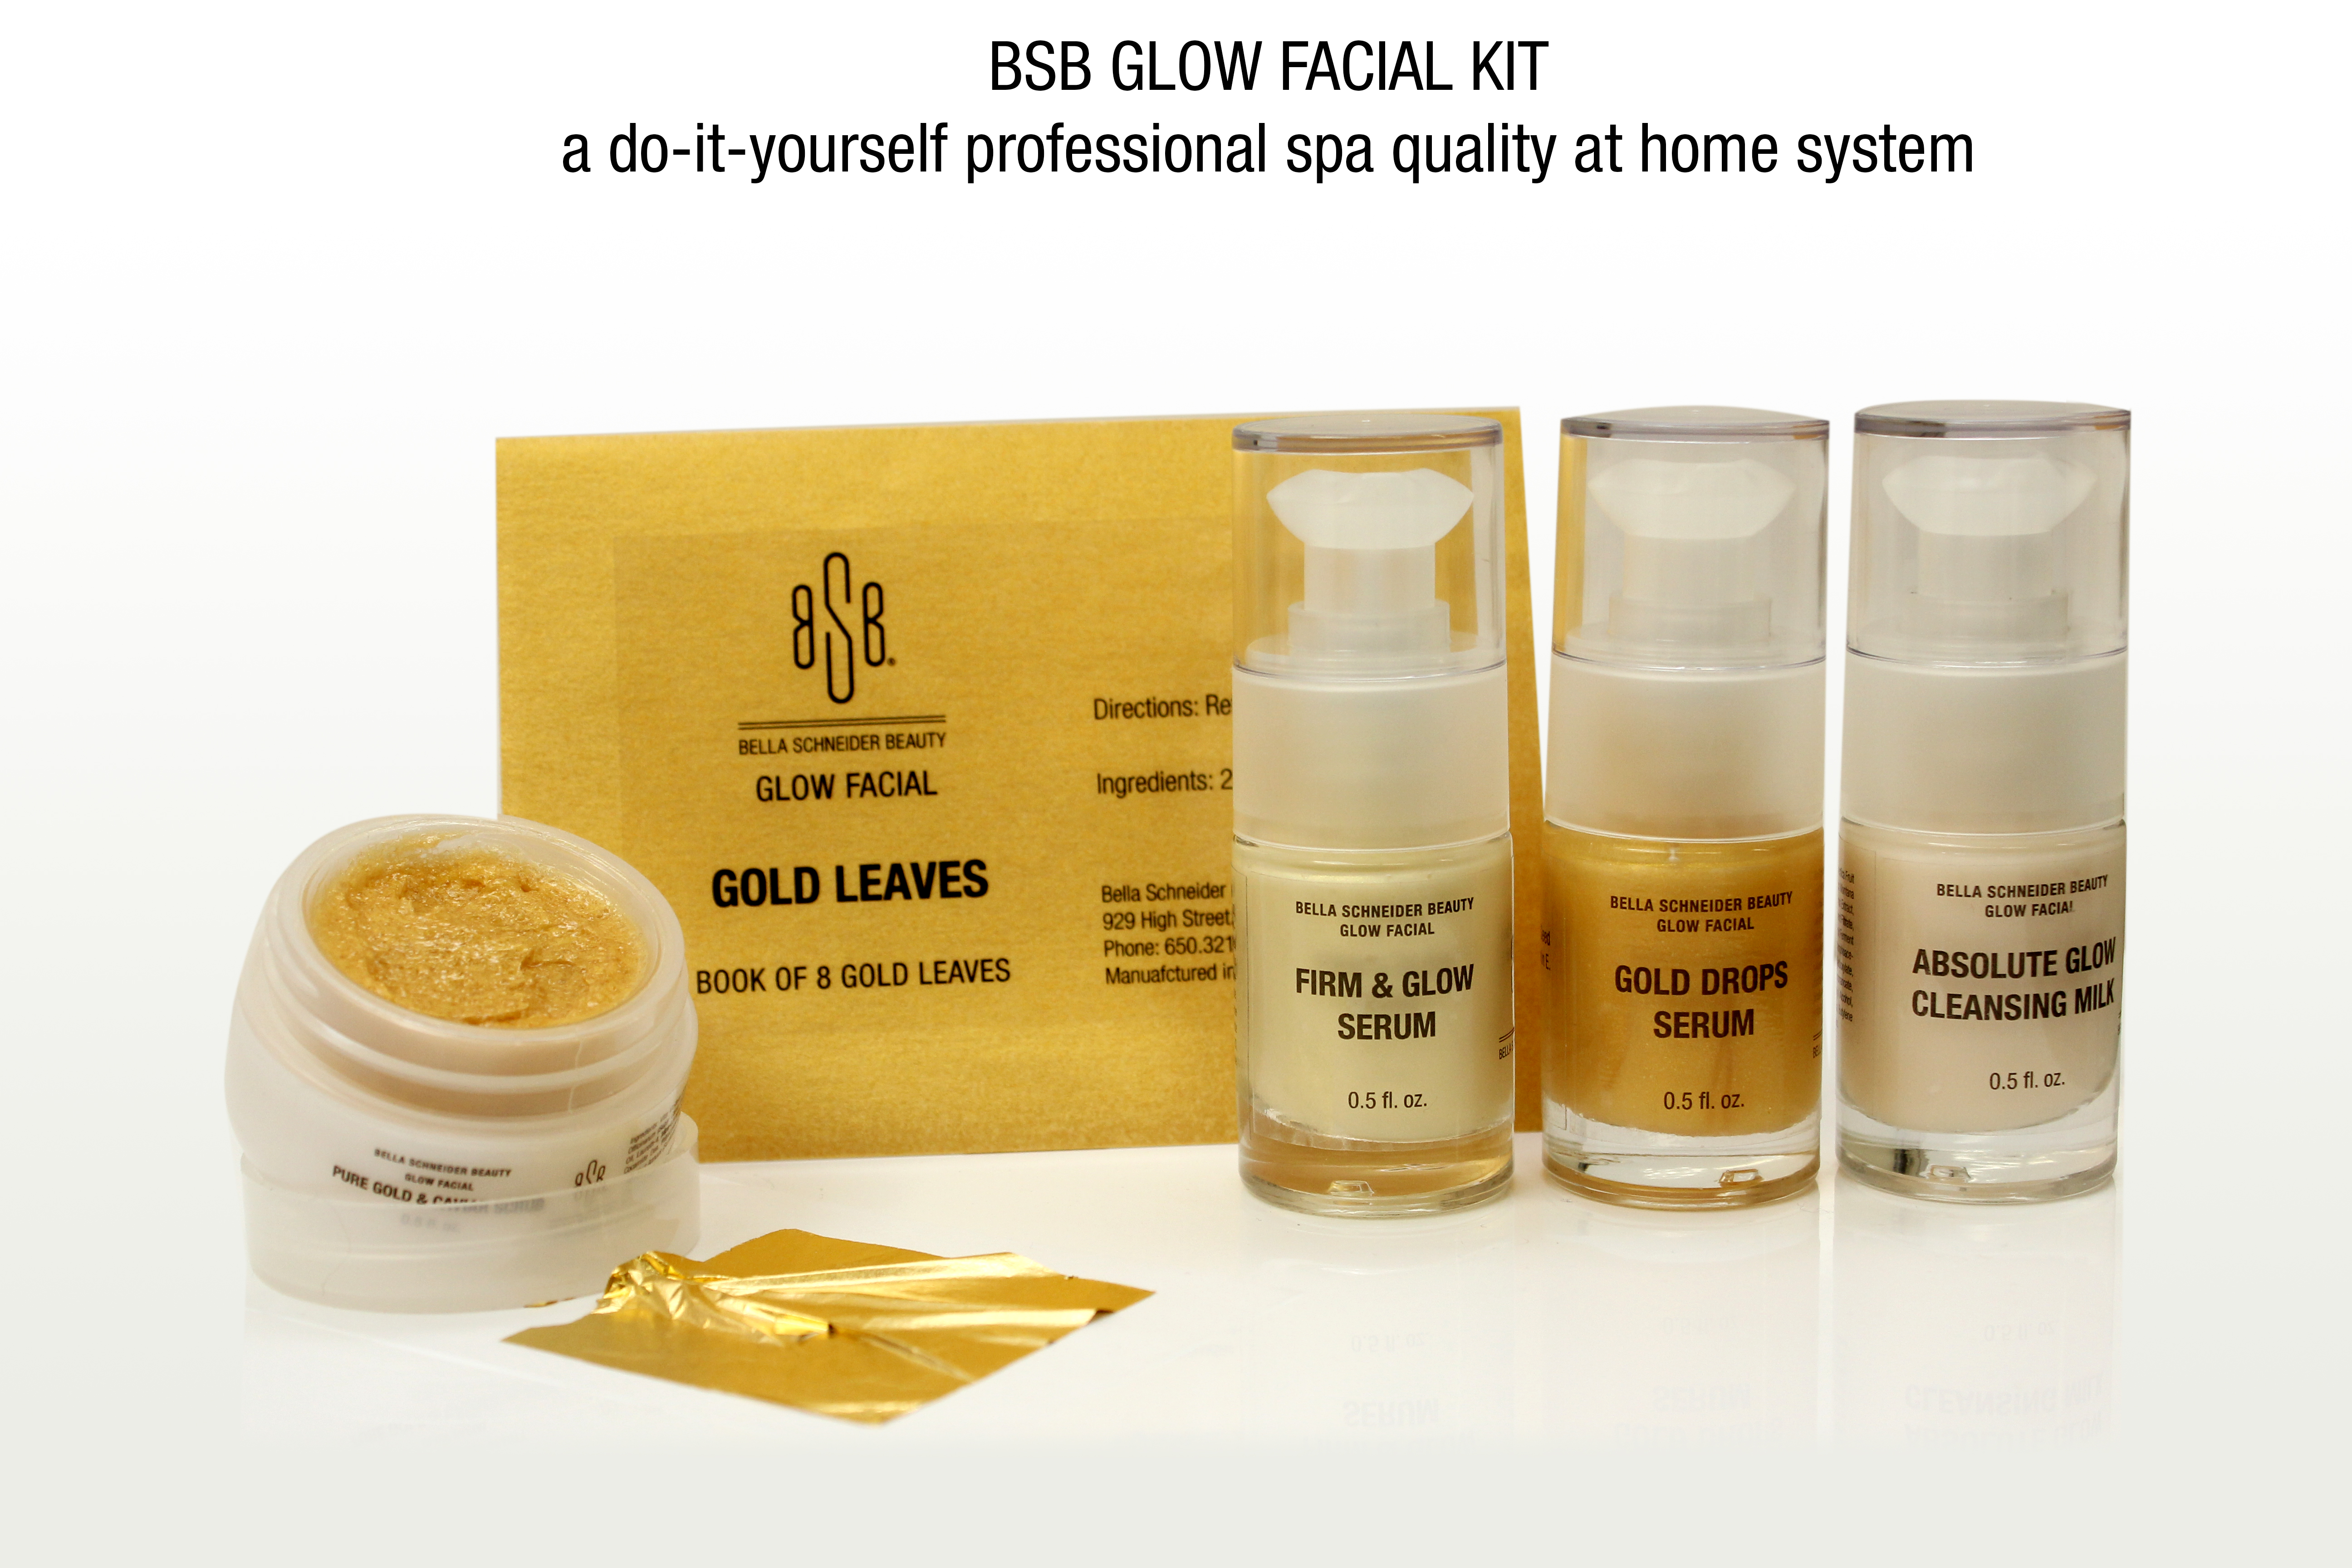 Bsb glow facial kit a do it yourself professional spa quality facial glow kit put your most gorgeous face forward with this diy spa grade home facial solutioingenieria Image collections